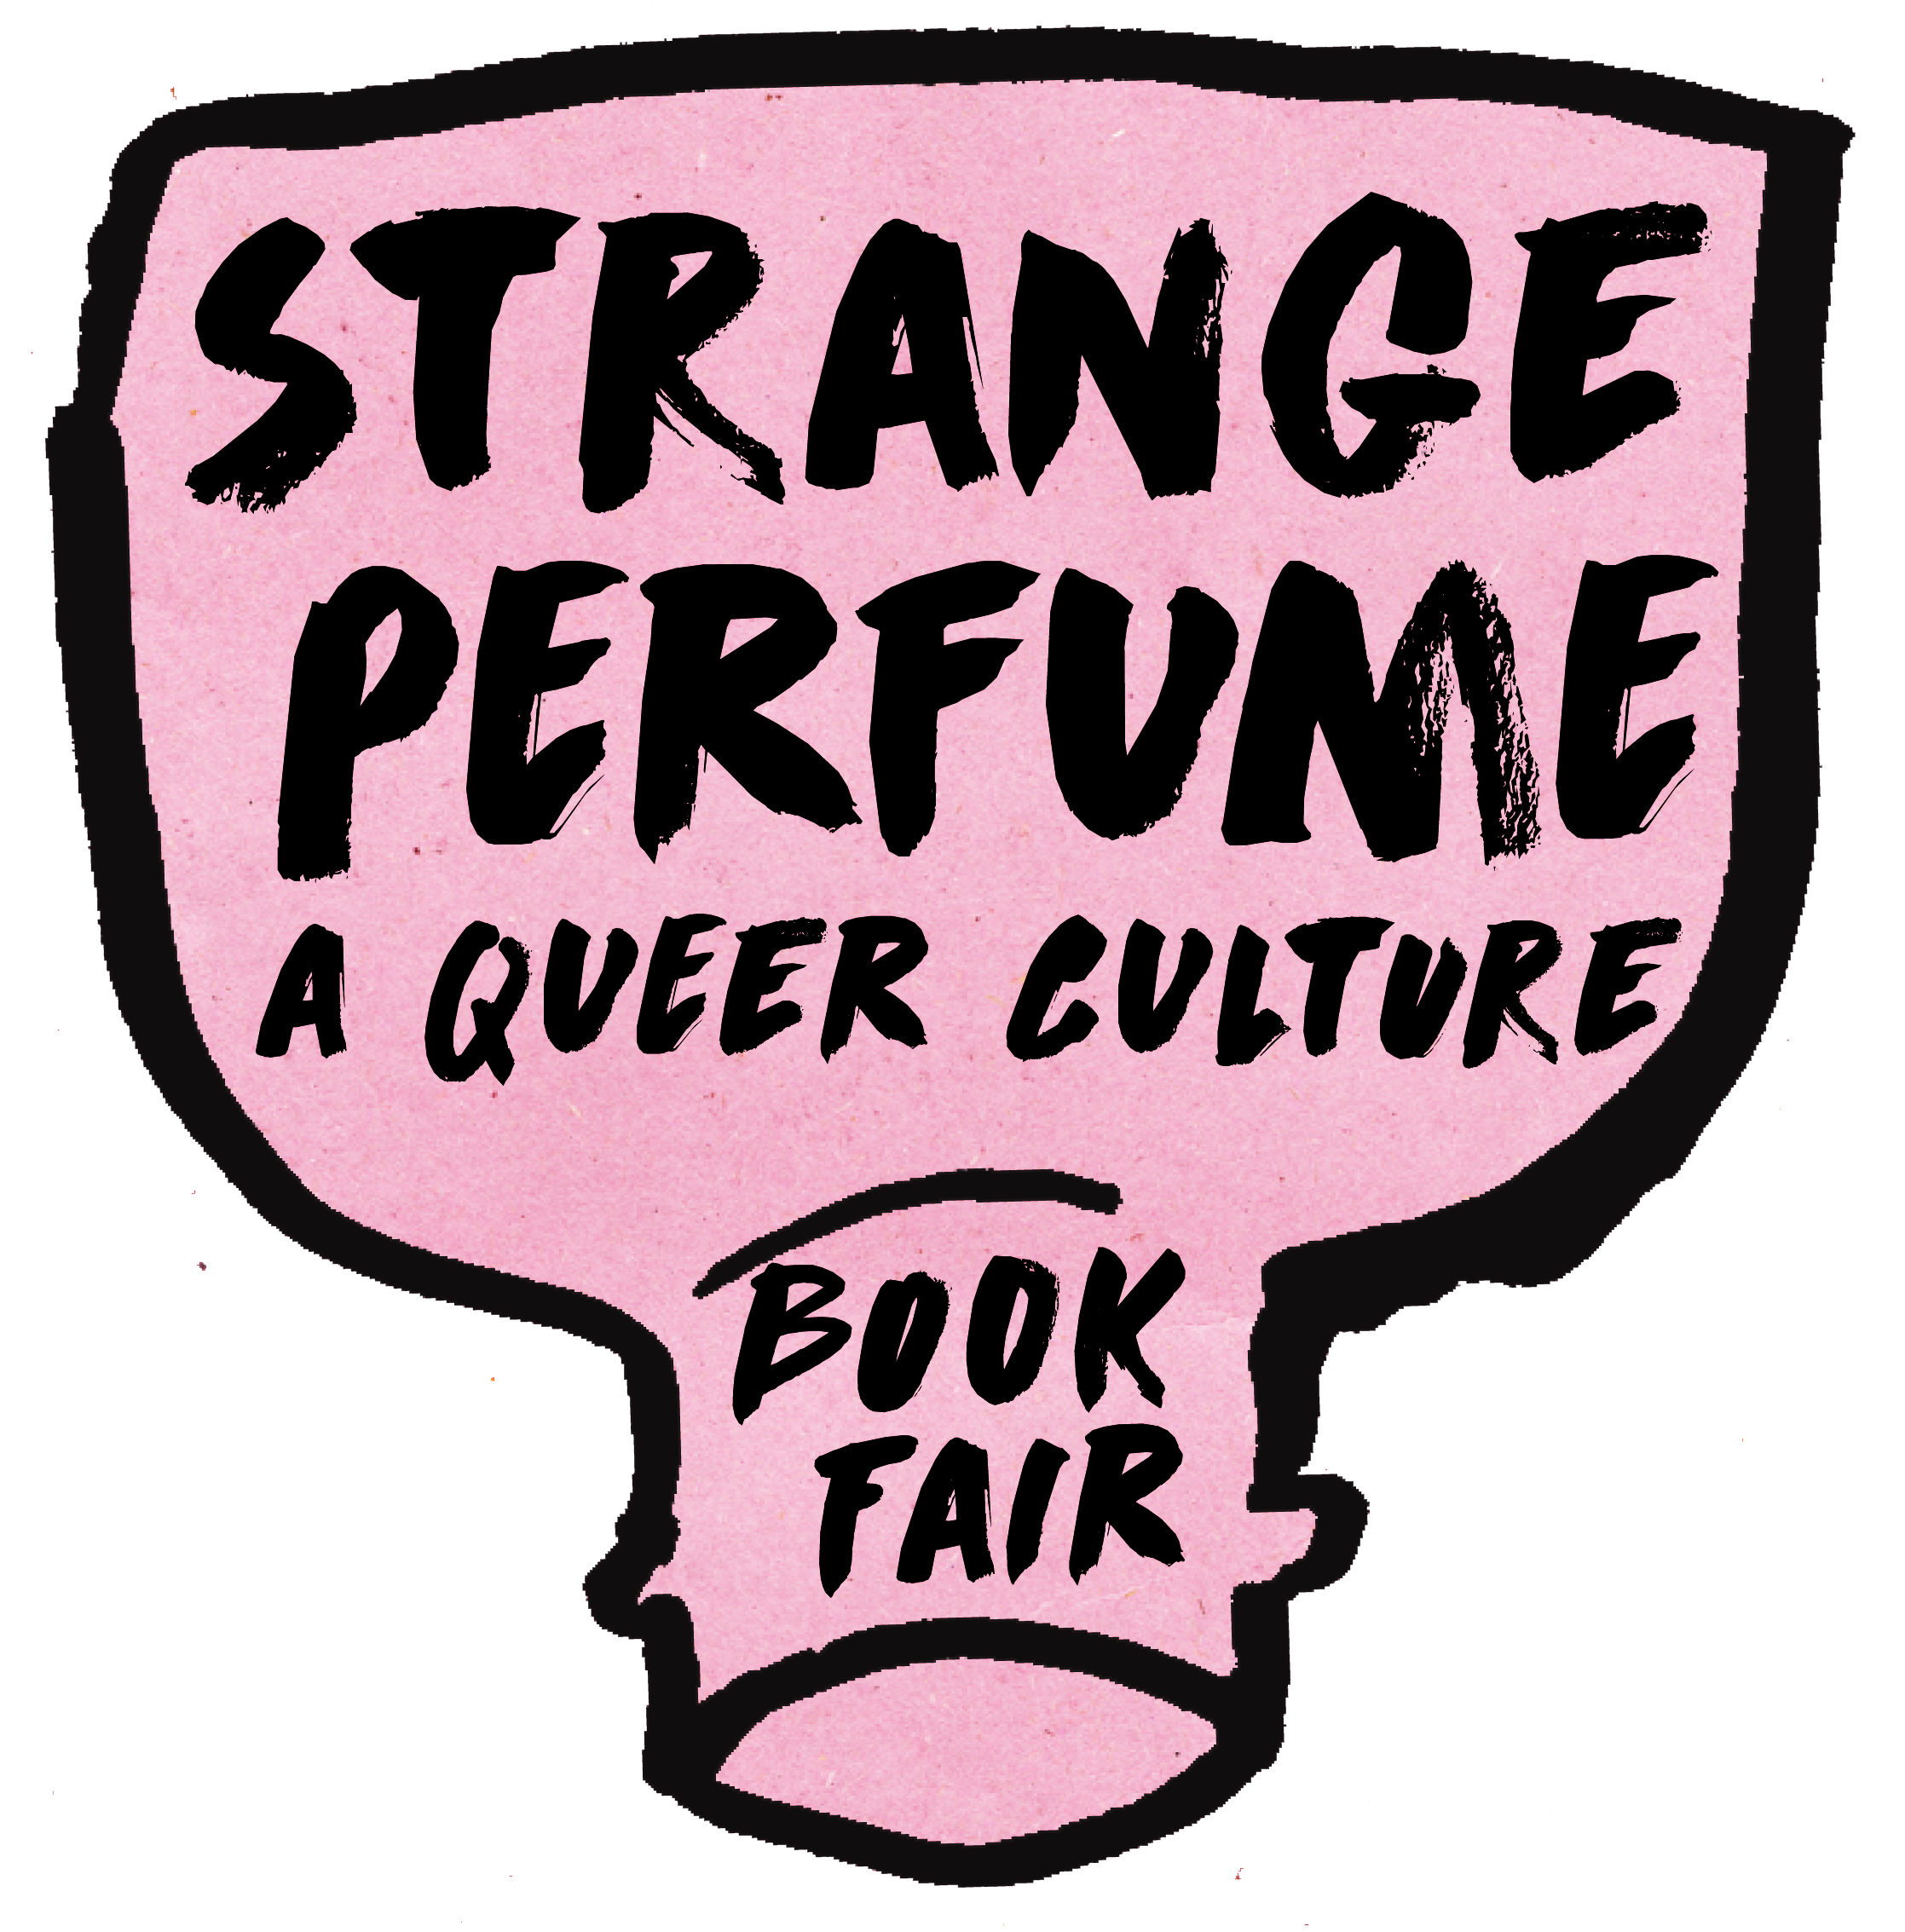 Strange Perfume: A Queer Culture Book Fair   Friday 14th June 6pm – 10pm Saturday 15th June 11am – 6pm  At the South London Gallery  65–67 Peckham Road London SE5 8UH   Look for the Raw Meat Collective sign <3